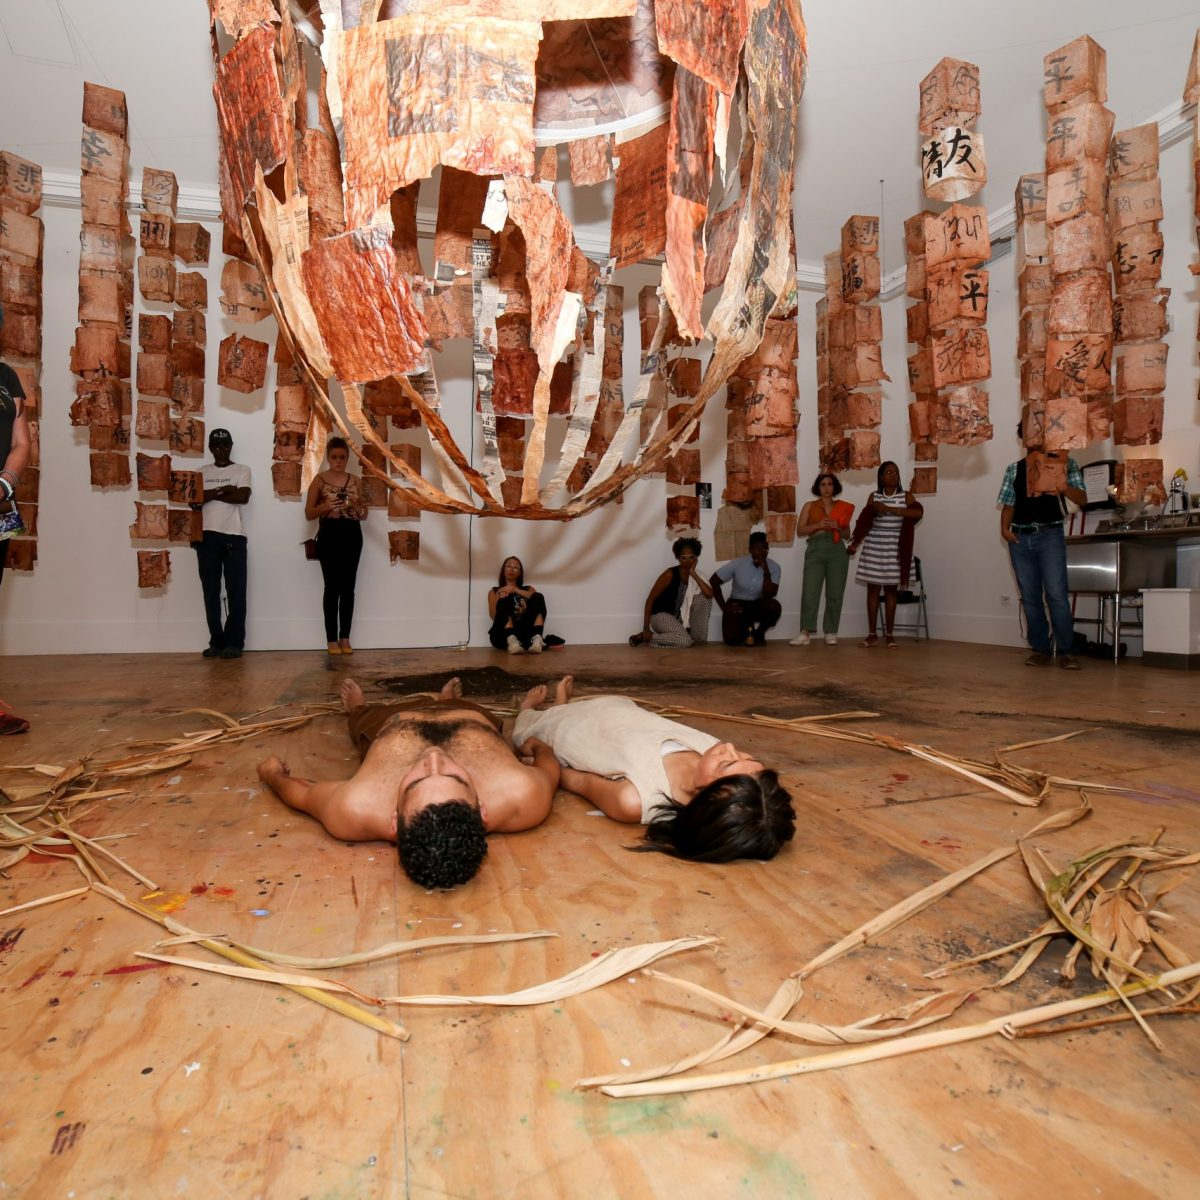 In the center of a room, two individuals lie on the ground, their gaze fixed on a massive sculpture, recalling the shape of an atomic bomb, which is hovering just above them. Around the edge of the room, people watch a chilling moment unfold; among them, more vertically hanging sculpture hang.